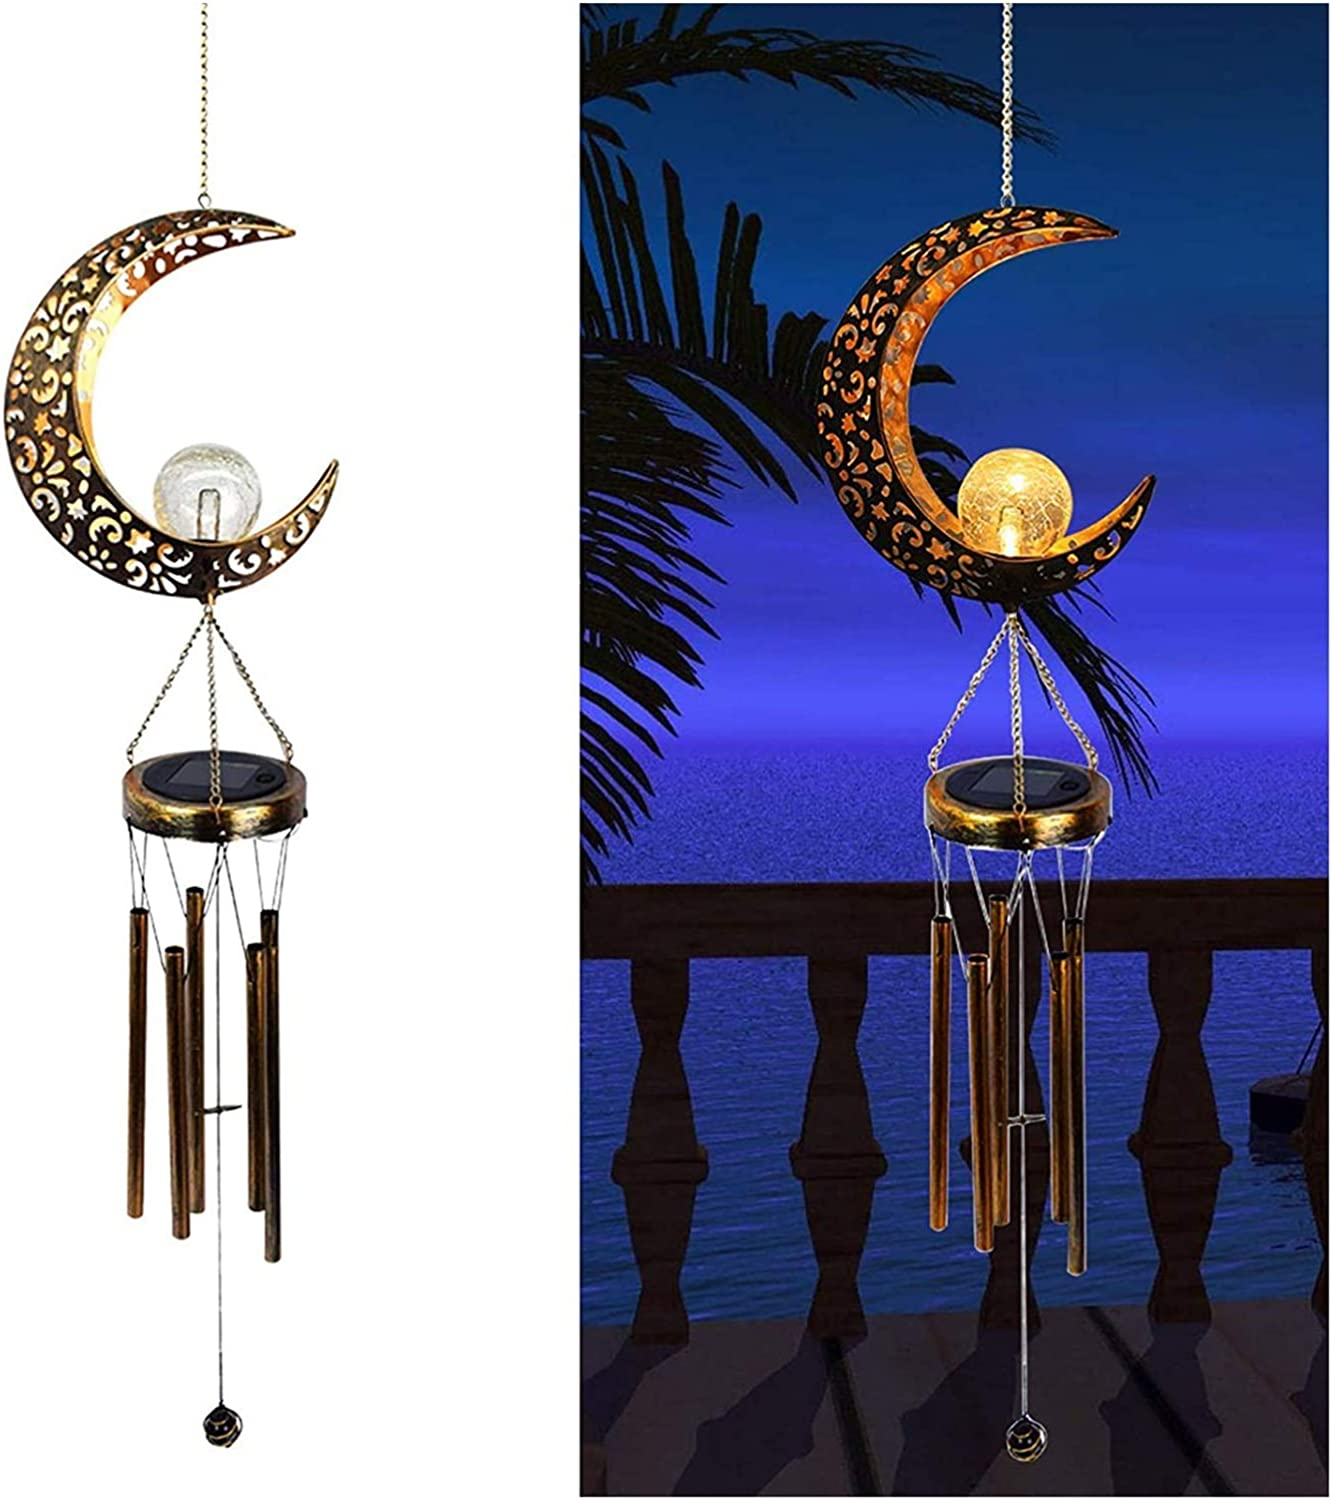 ZHXQ Solar Moon Wind Chime LED Bulb Cracked Cha Glass Outlet sale feature Credence